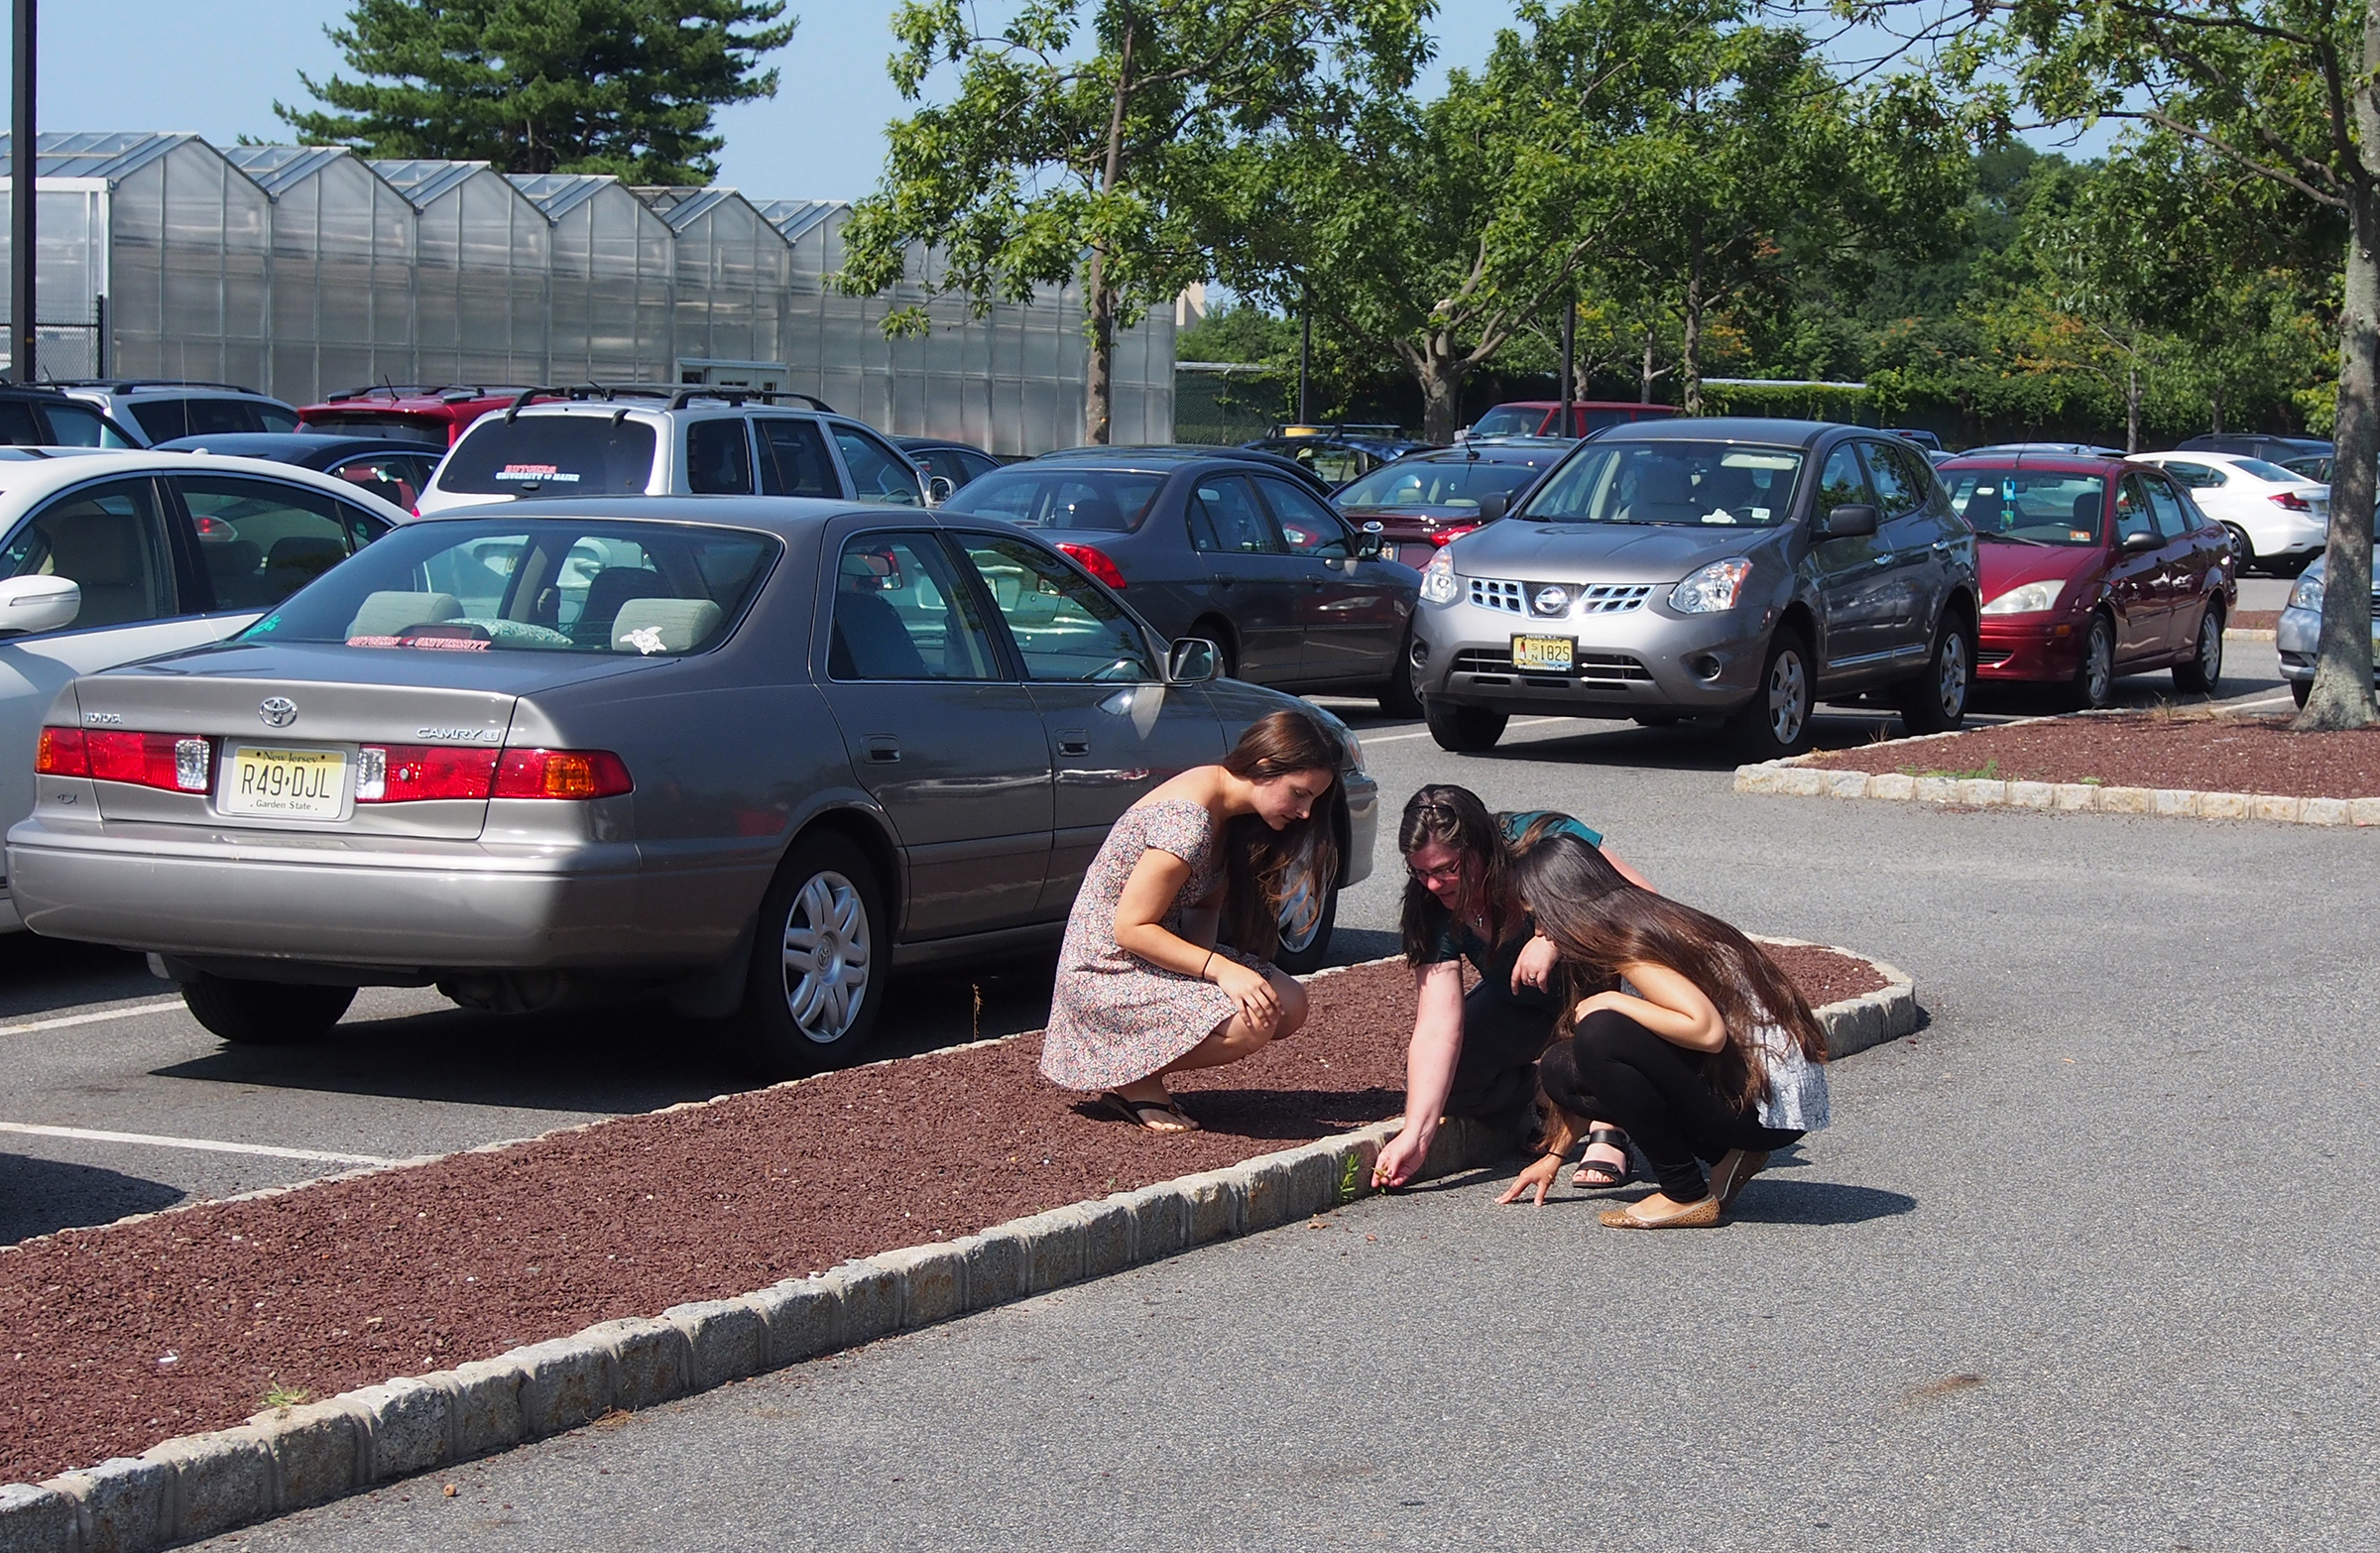 Weeds in Rutgers Parking Lot Project